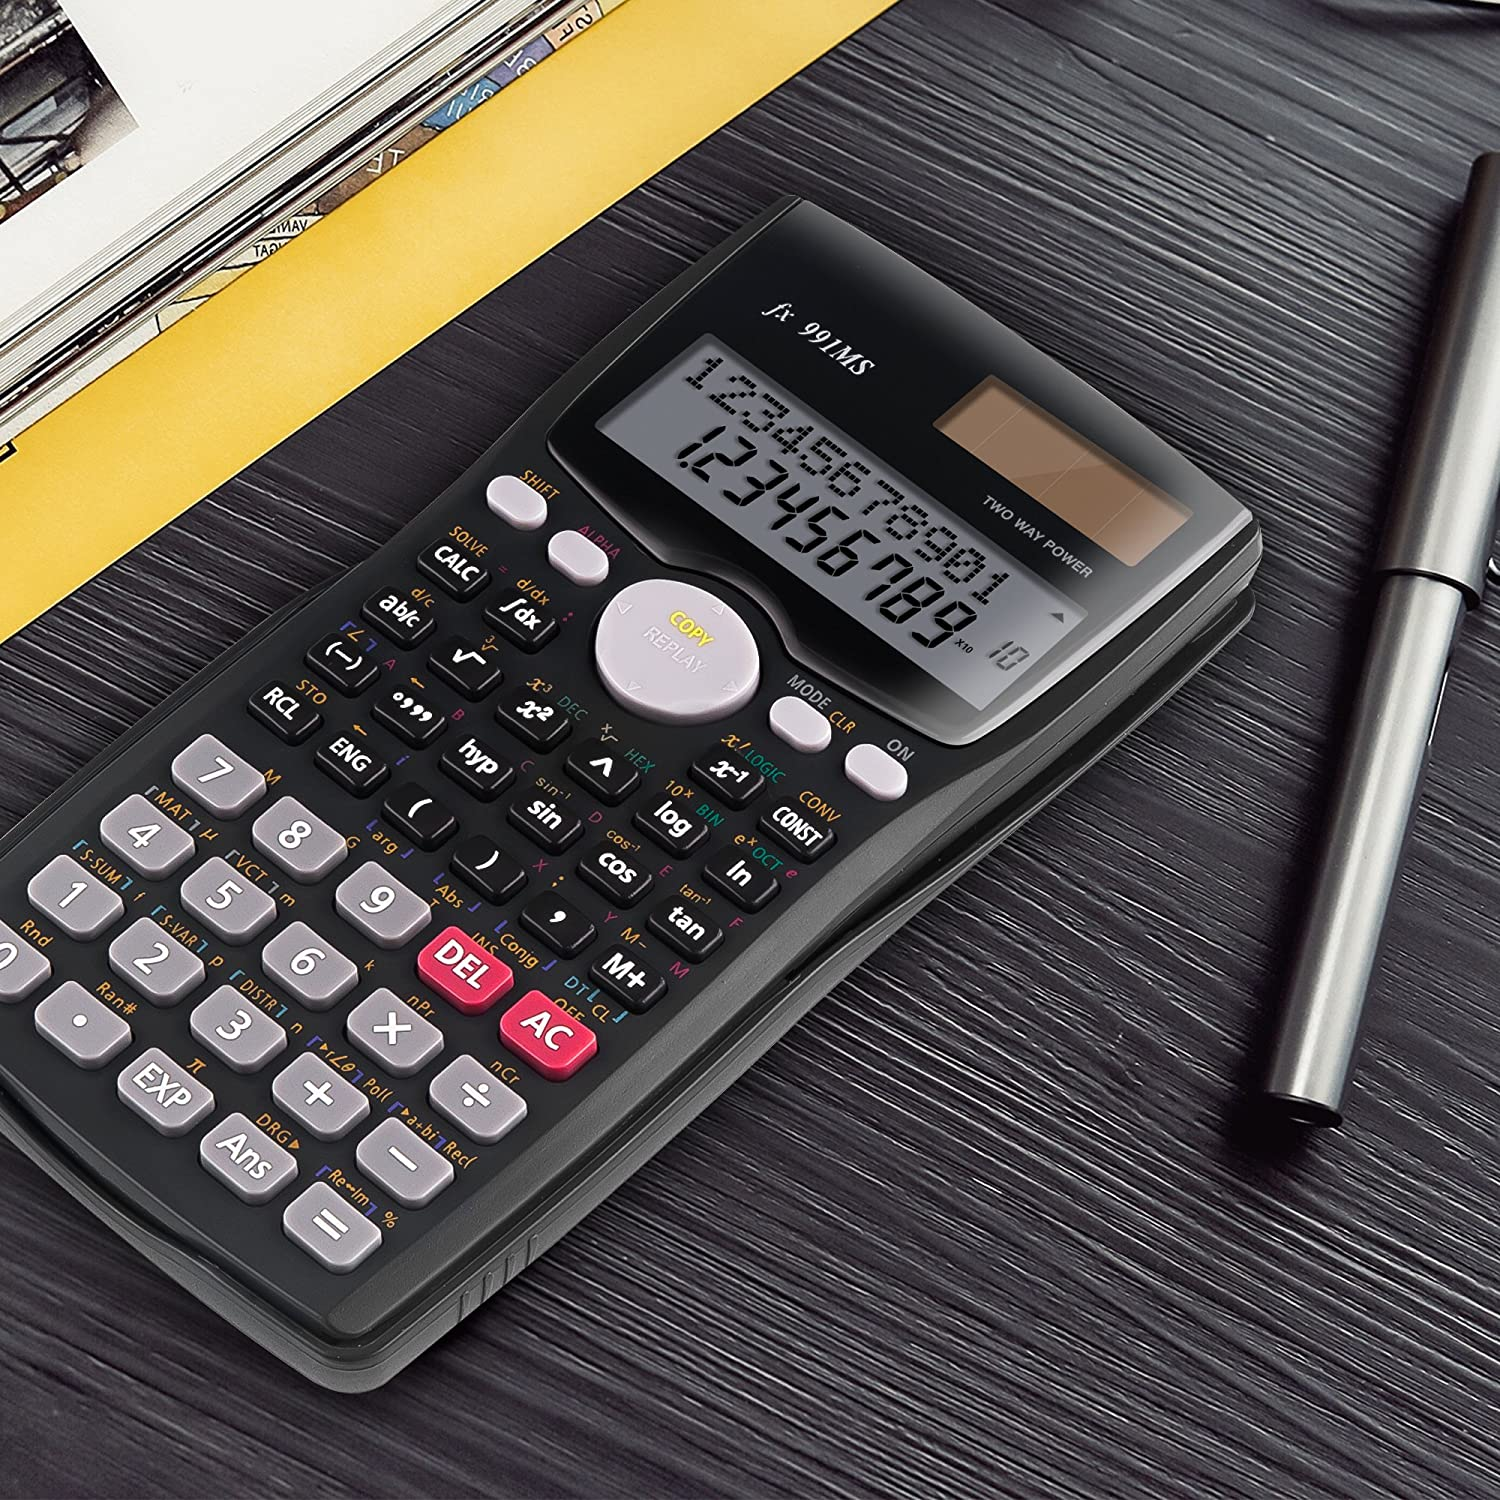 Scientific Calculators Kdt 2 Line Engineering Scientificcalculatorcircuitboardmadeinchinajpg Calculator Two Way Power Standard Function Home Kitchen